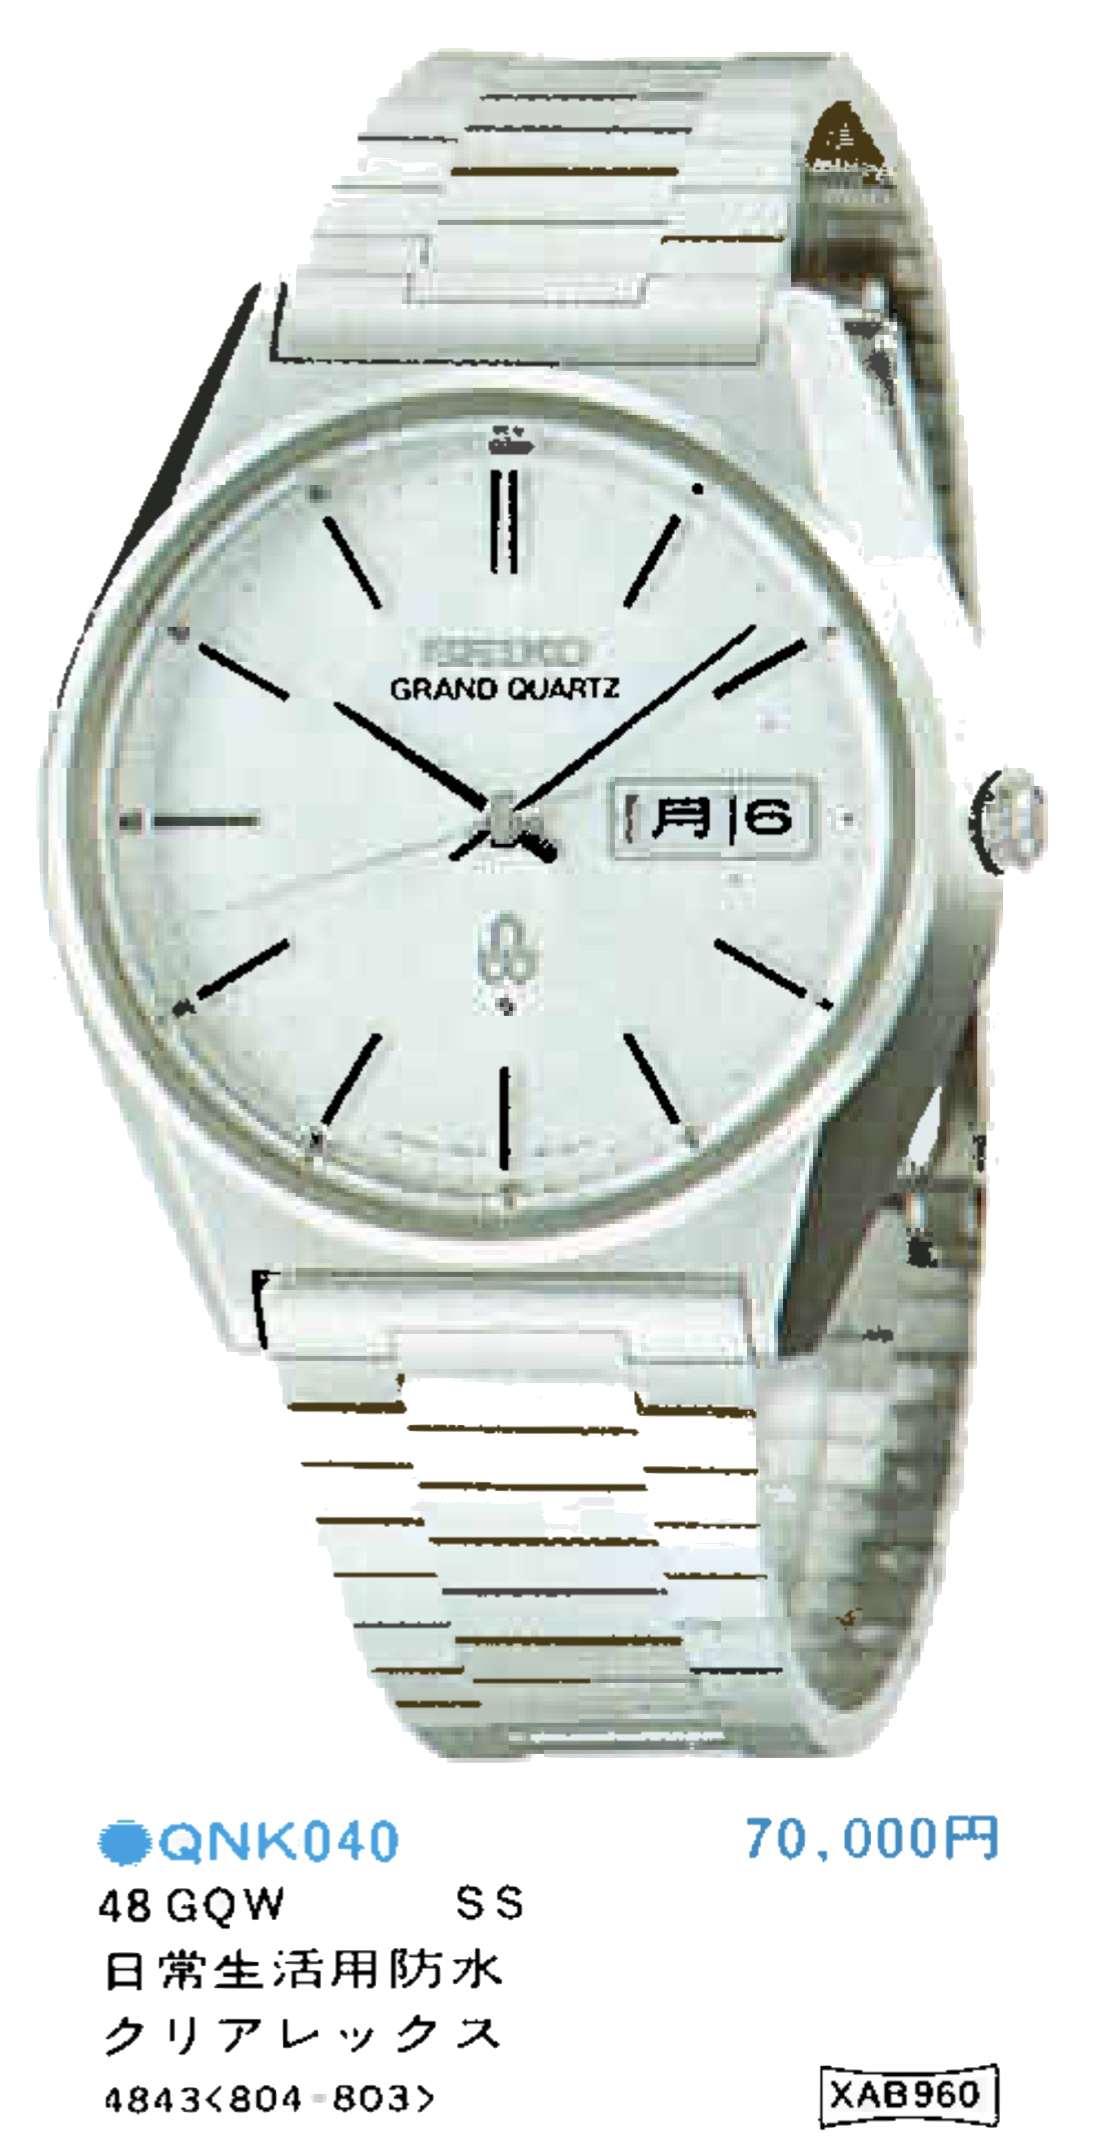 Seiko Grand Quartz 4843-8041 (Service/Sold)